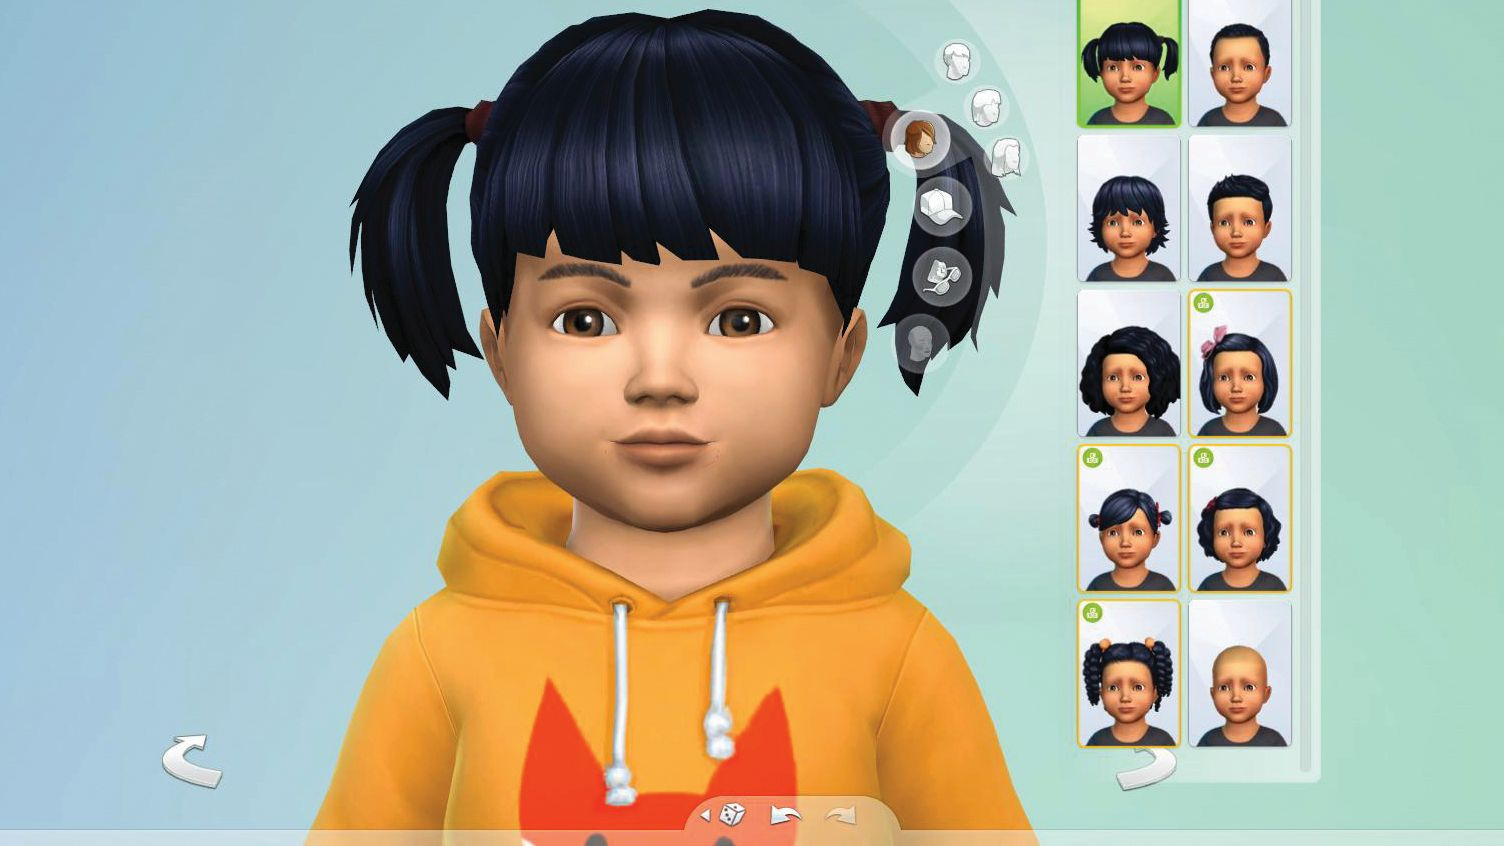 Raising a digital child the PC Gamer way in The Sims 4 | PC Gamer